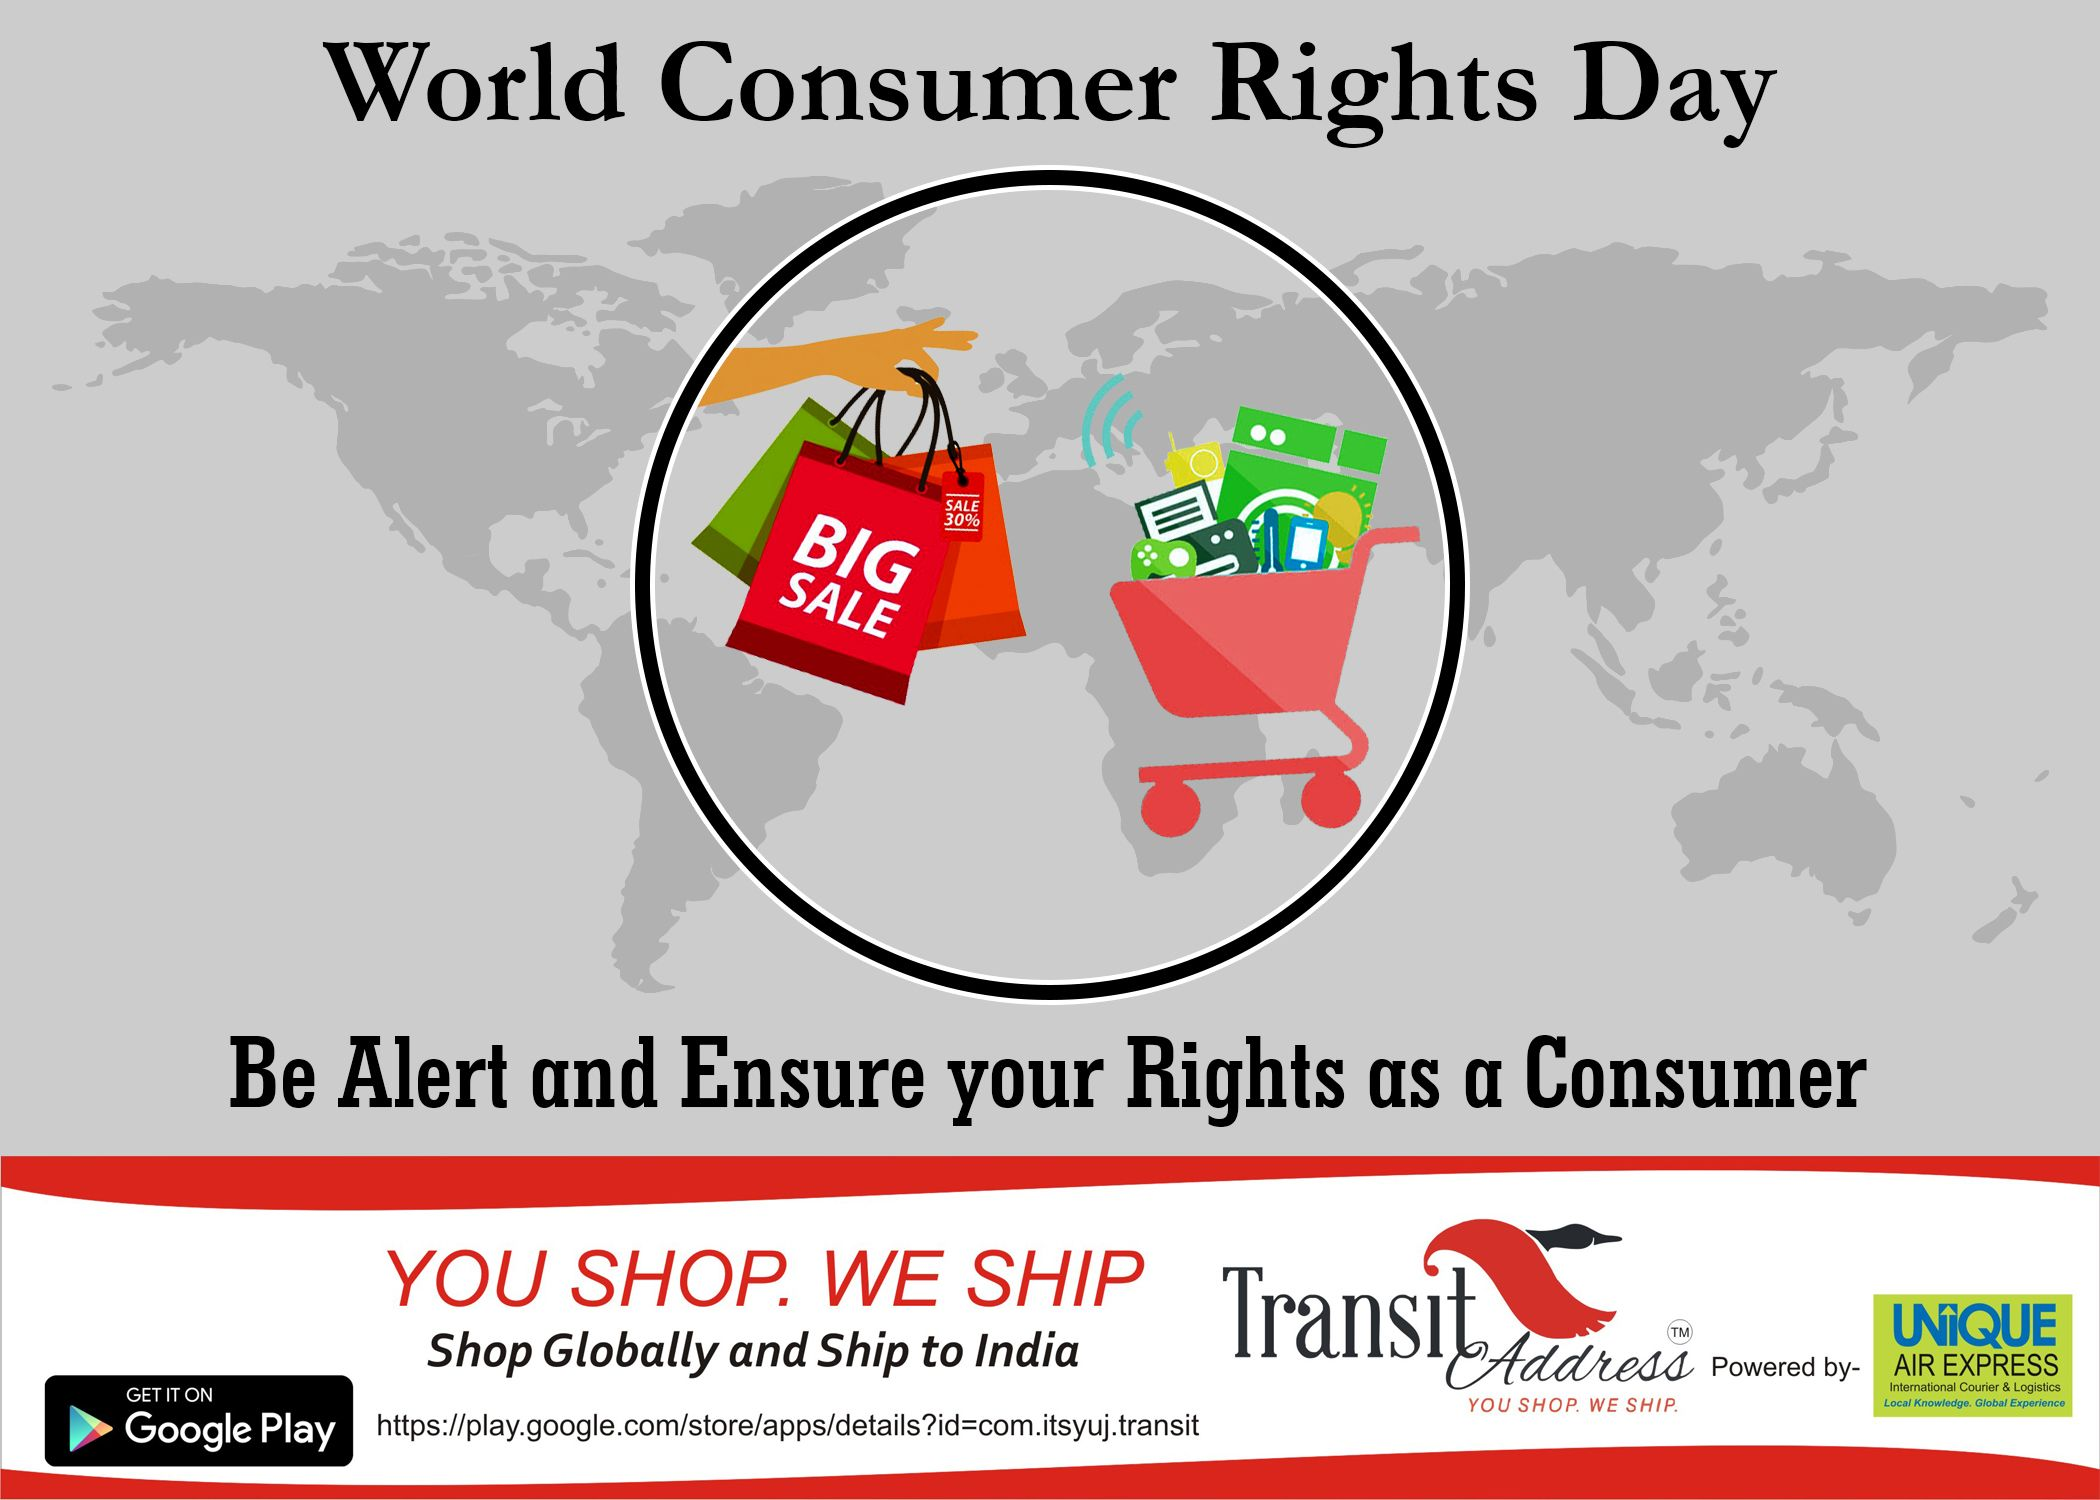 You Re Product You Re Rights Know Your Rights Don T Be Fooled Theme For World Consumer Rights Day Is Trusted Smart Produc Day World International Shopping